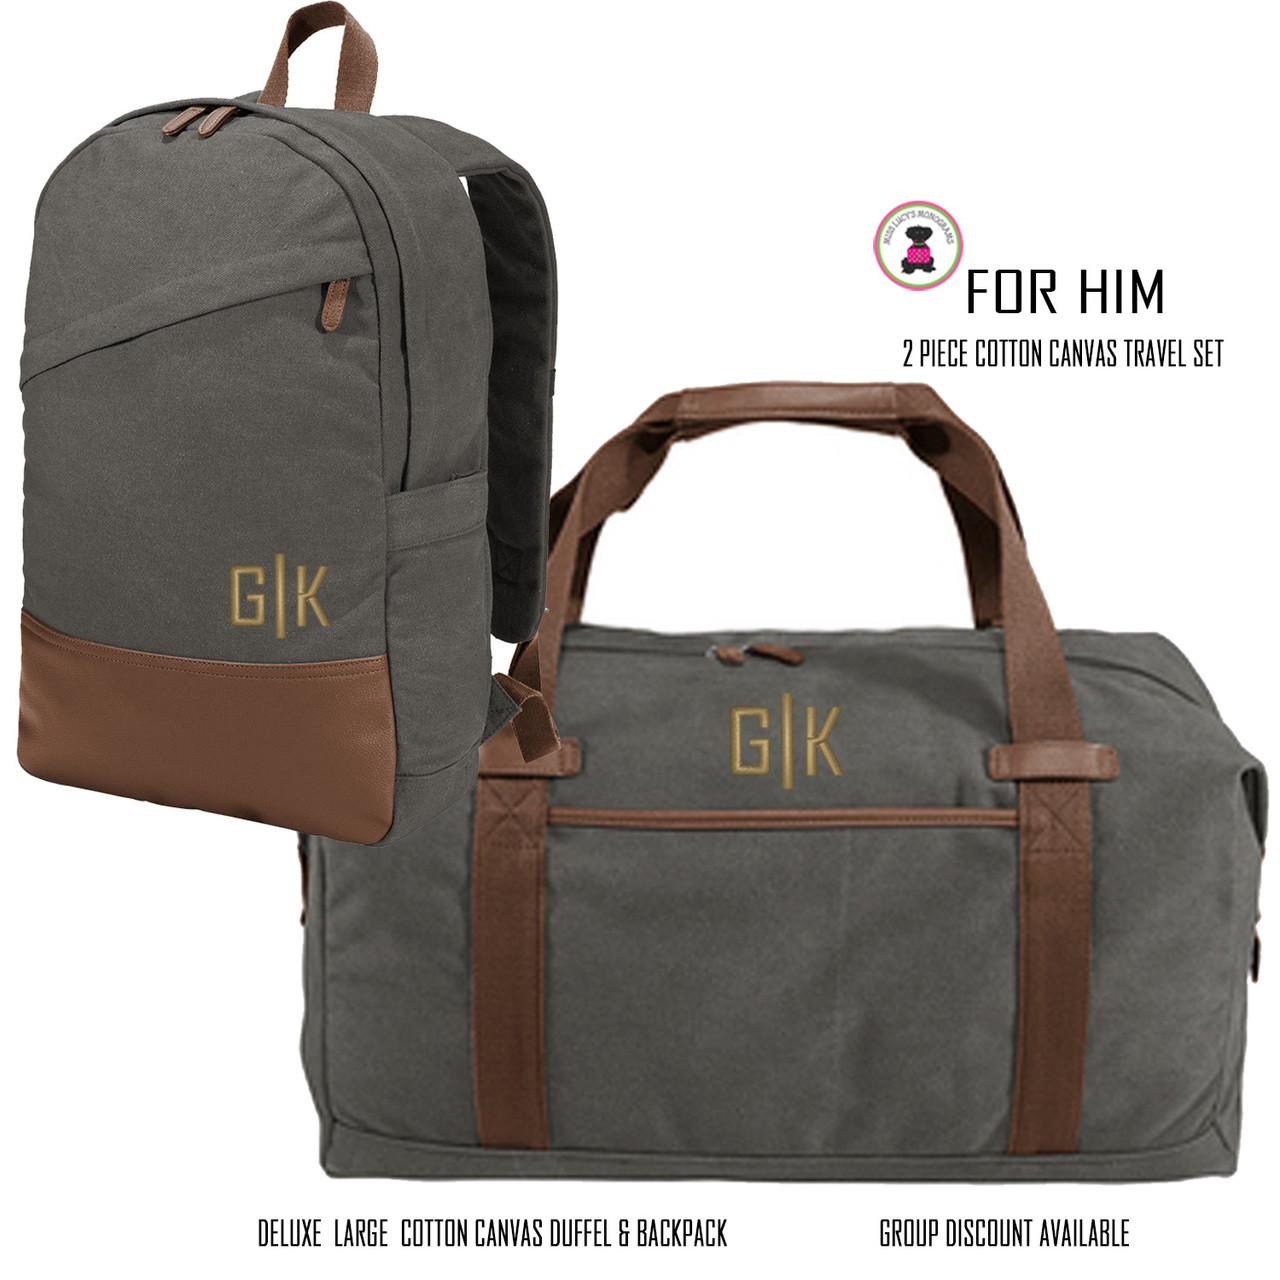 bae8fd4ae108 FOR HIM Monogrammed DELUXE LARGE COTTON CANVAS 2 Piece TRAVEL SET-Duffel    Backpack--DARK GRAY - FREE SHIP-Men Travel Mens Duffel Groomsmen Gift Father s  ...